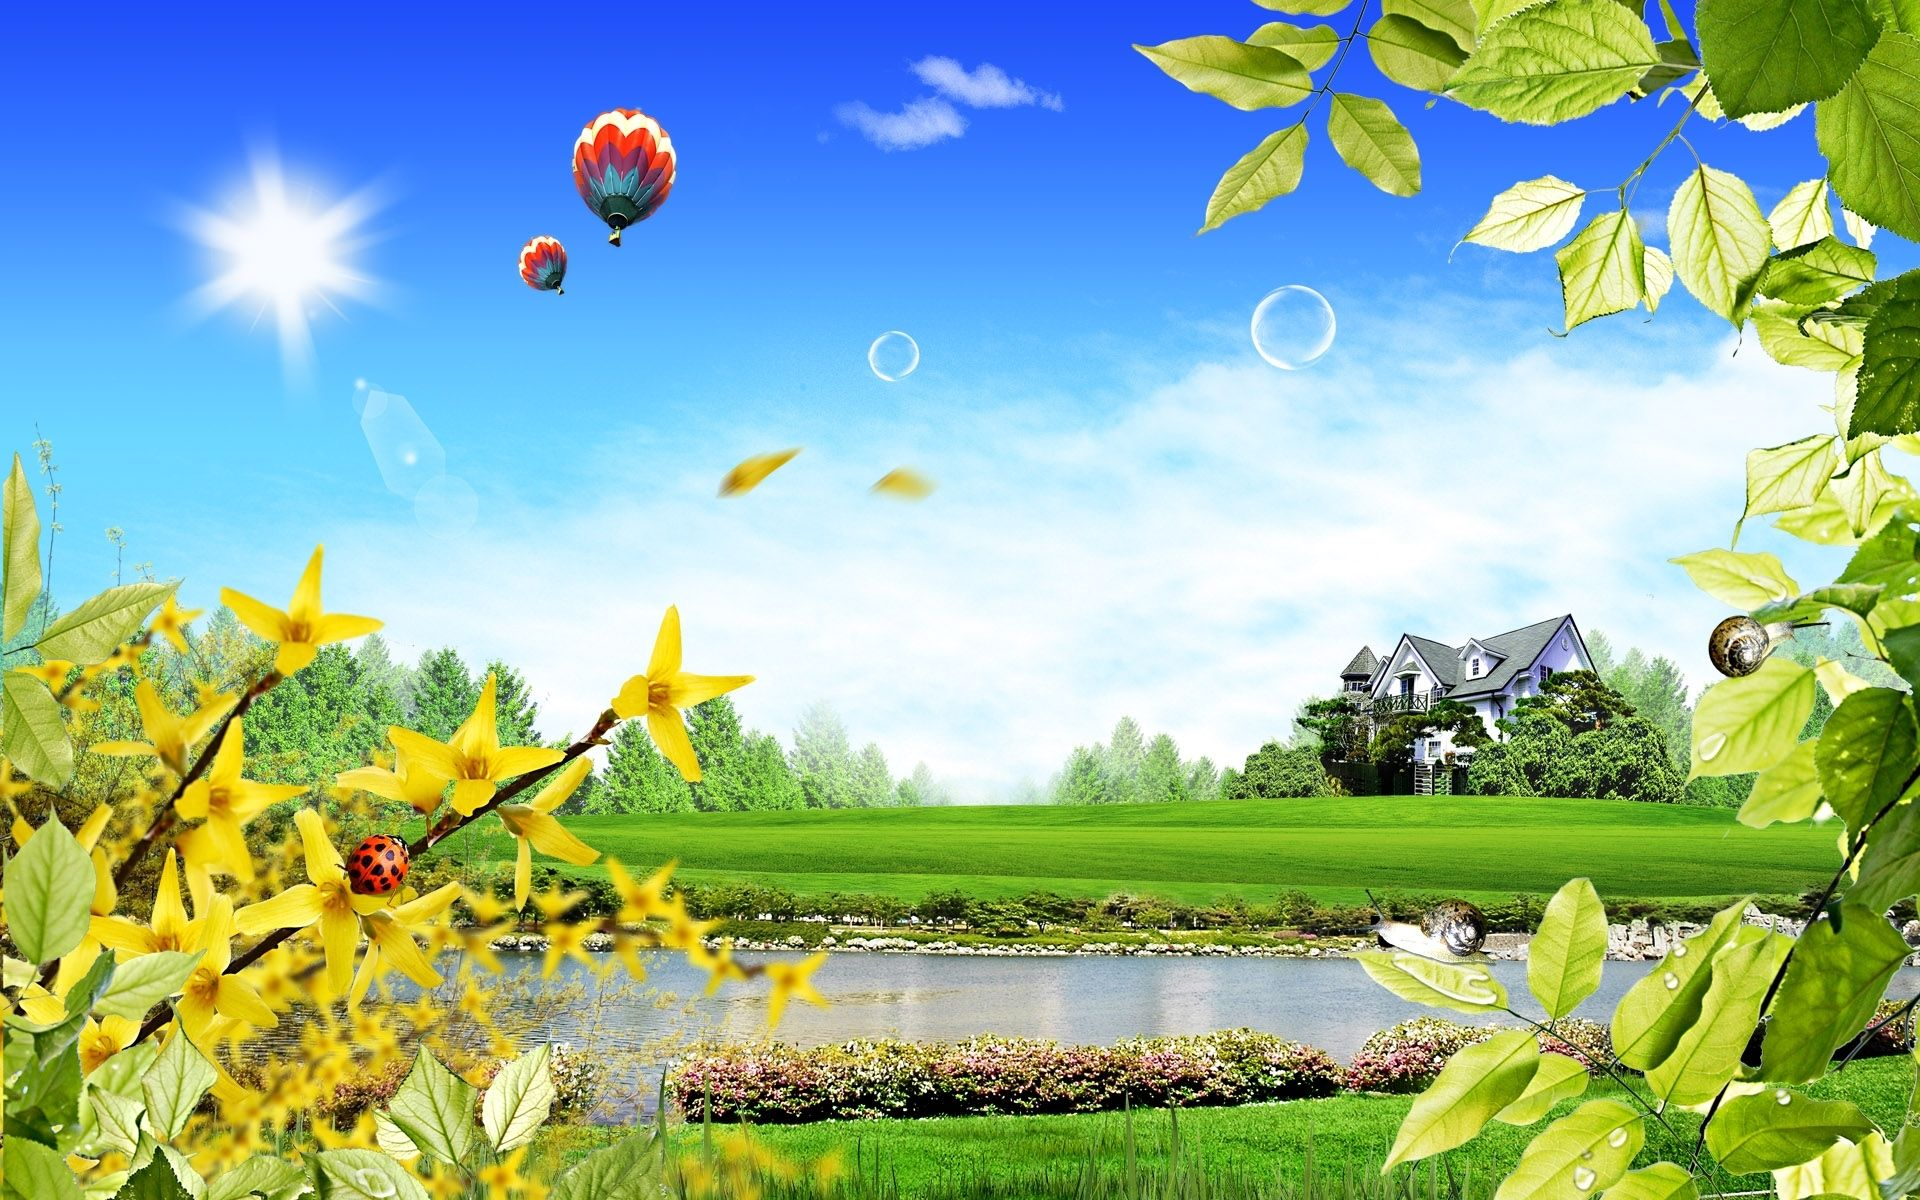 Scenary Wallpaper Beautiful Hd Scenic Pictures Description From 3d Beautiful